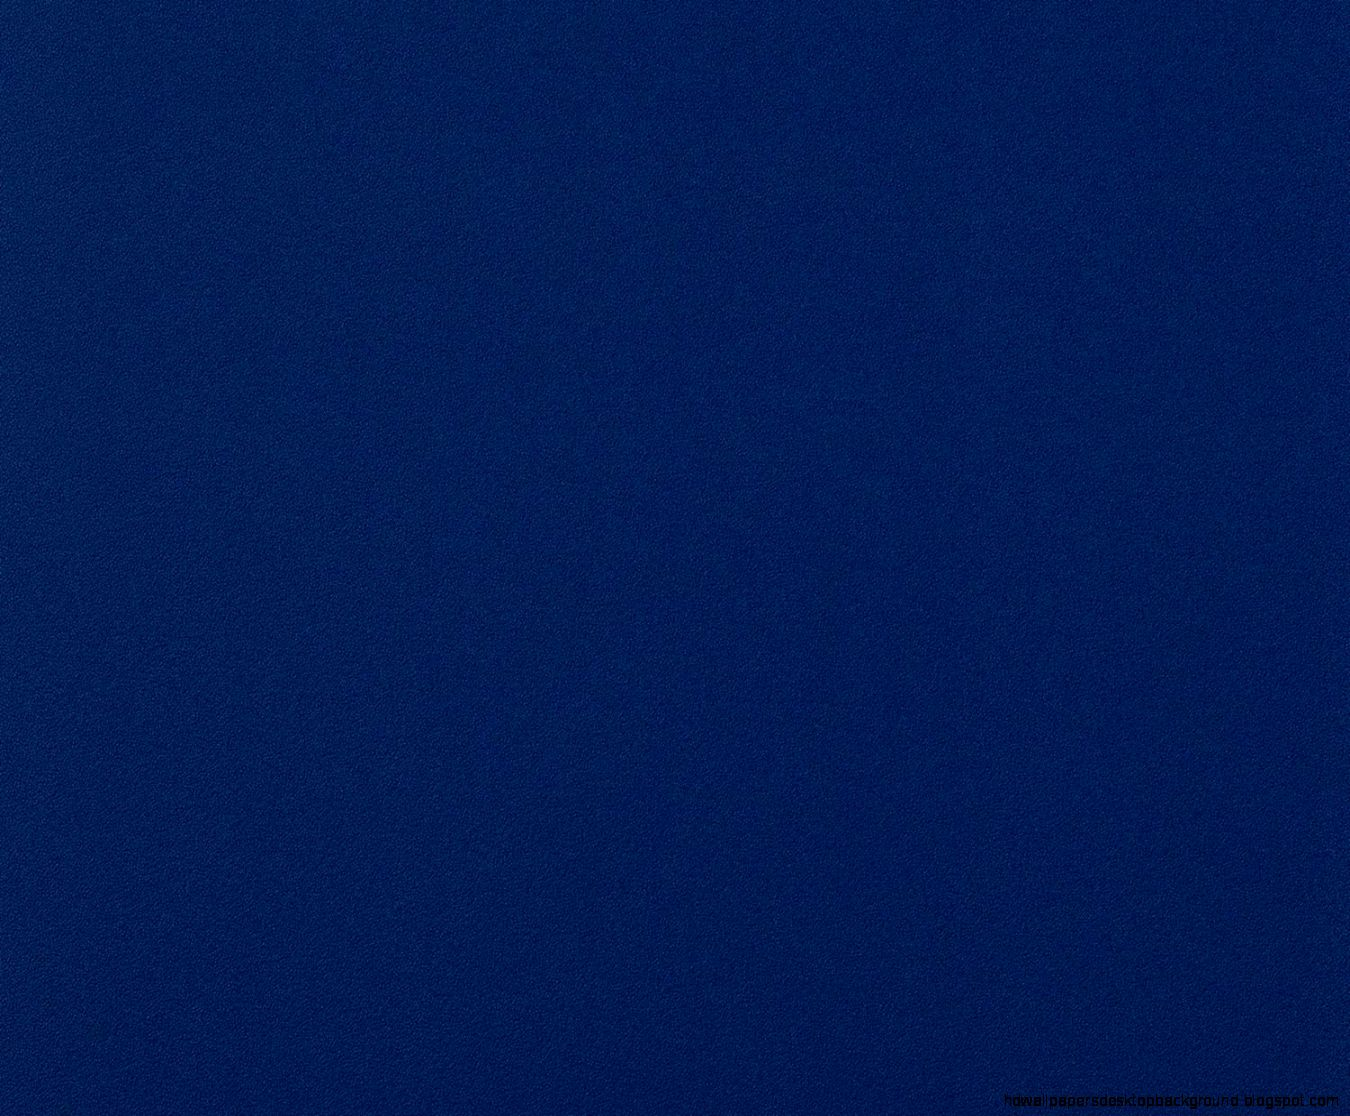 Plain blue wallpaper wallpapersafari - Dark blue wallpaper hd for android ...